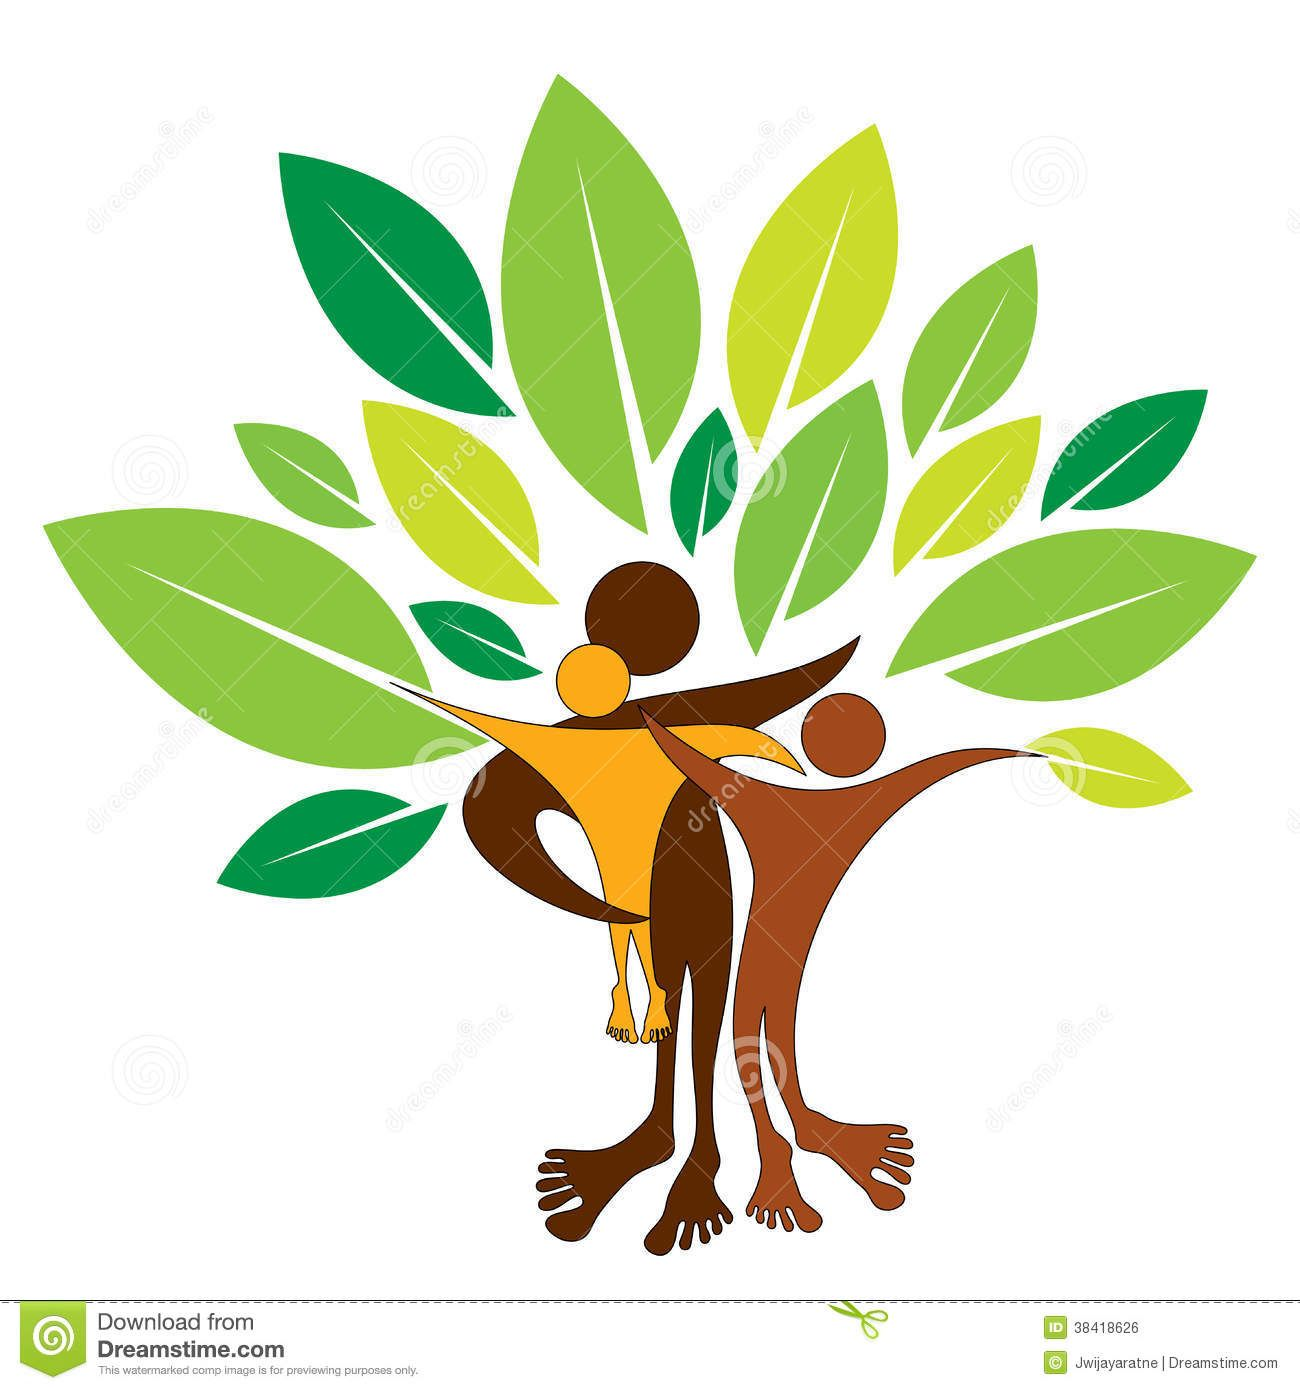 Family Tree Logo - Image result for family tree logo | ZenoZenon logo ideas | Tree ...